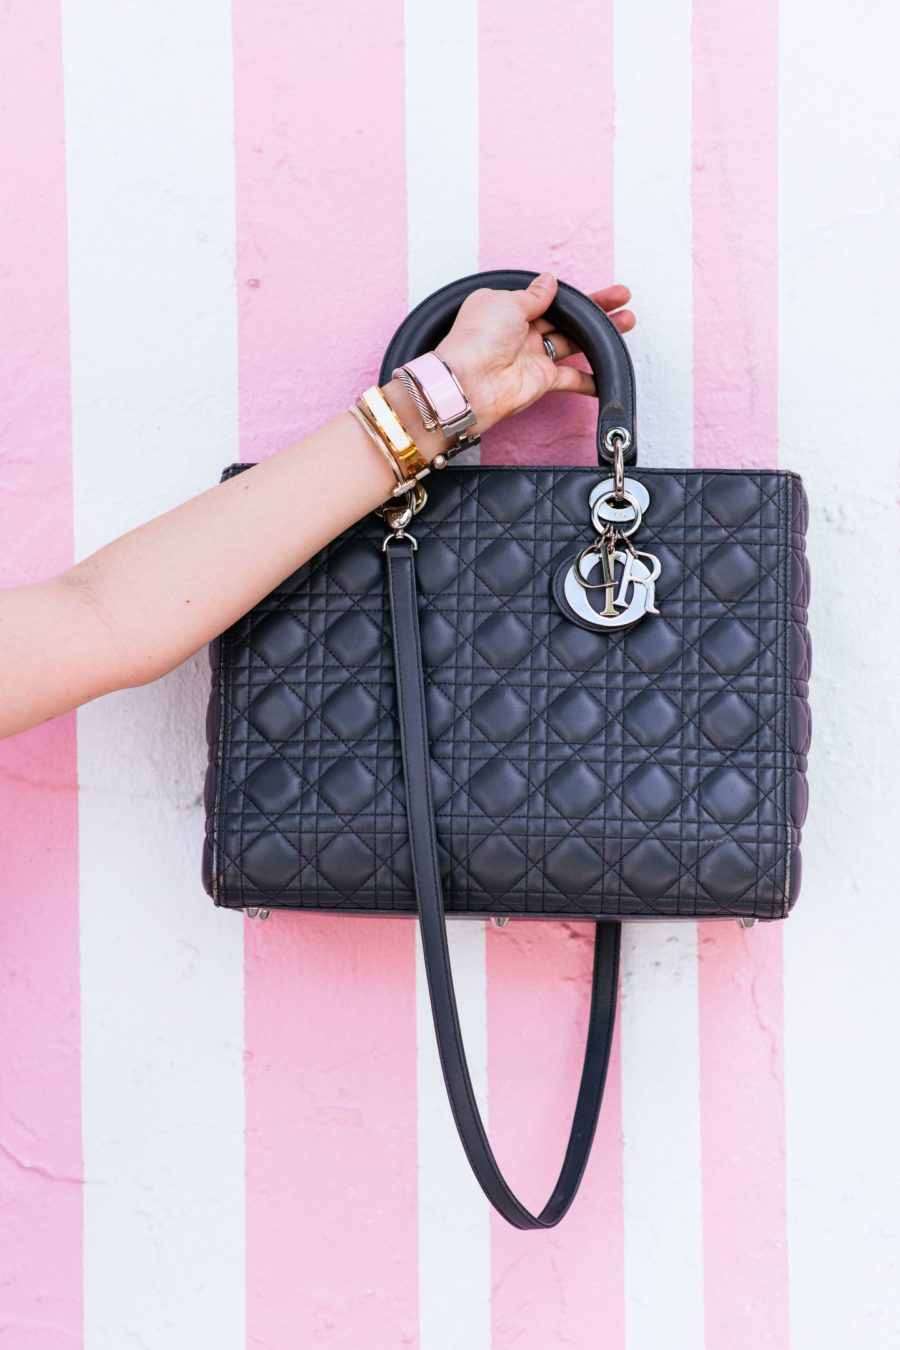 f0c91194e9 How to purchase designer handbags on a budget - Curated by Kirsten